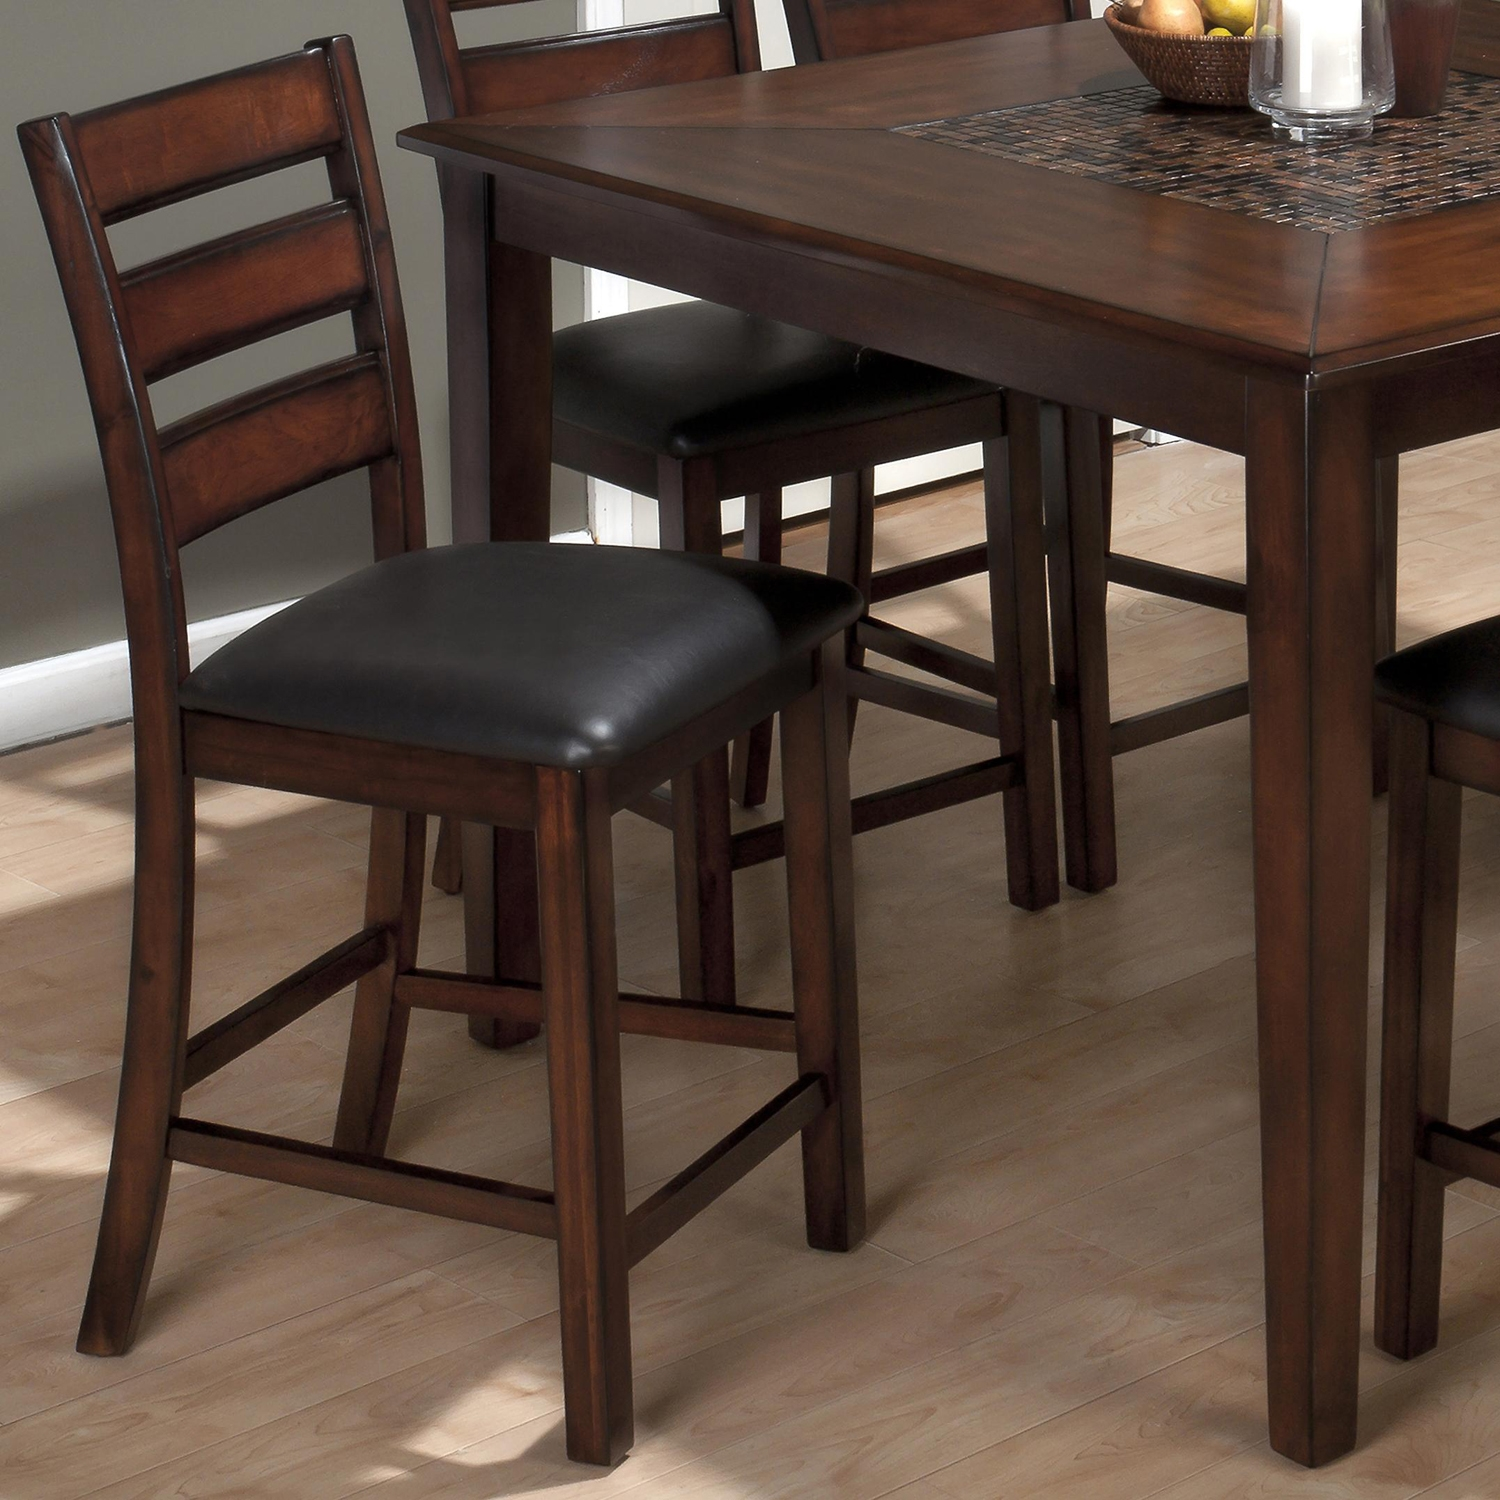 Baroque 7 Pieces Counter Dining Set - Mosaic Inlay, Brown - JOFR-697-50-BS923KD-SET